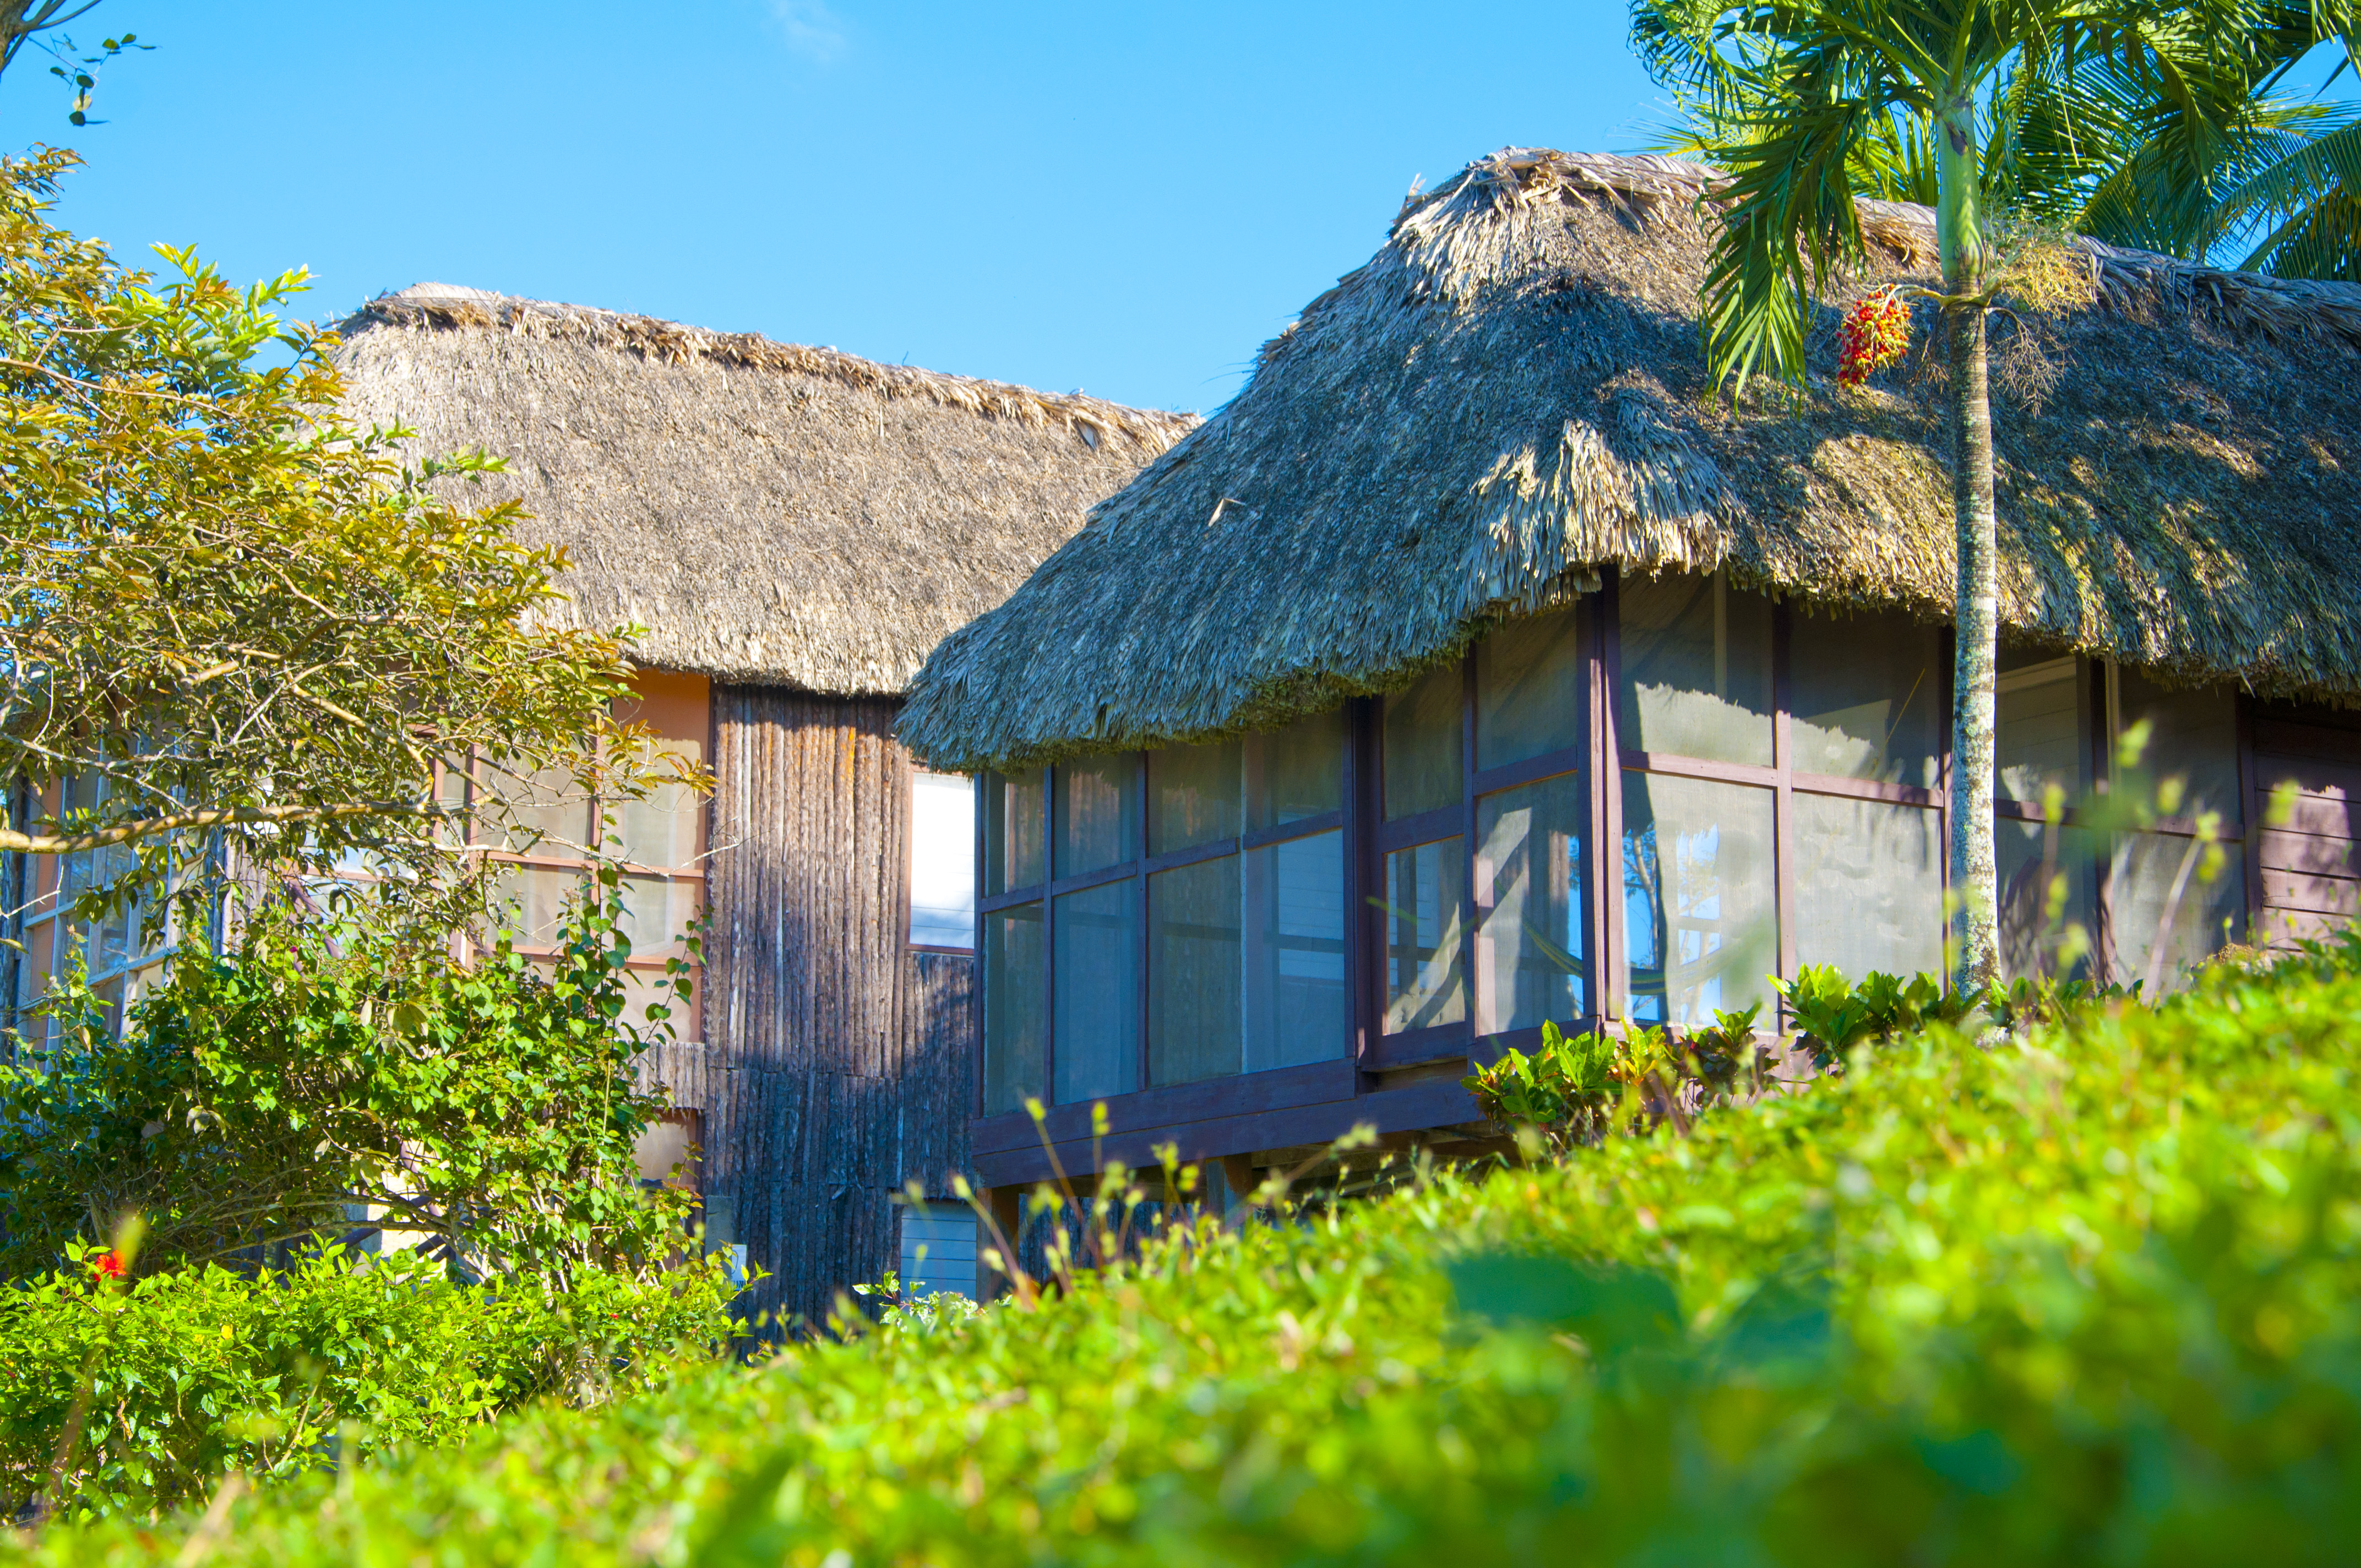 belize vacations at cahal pech